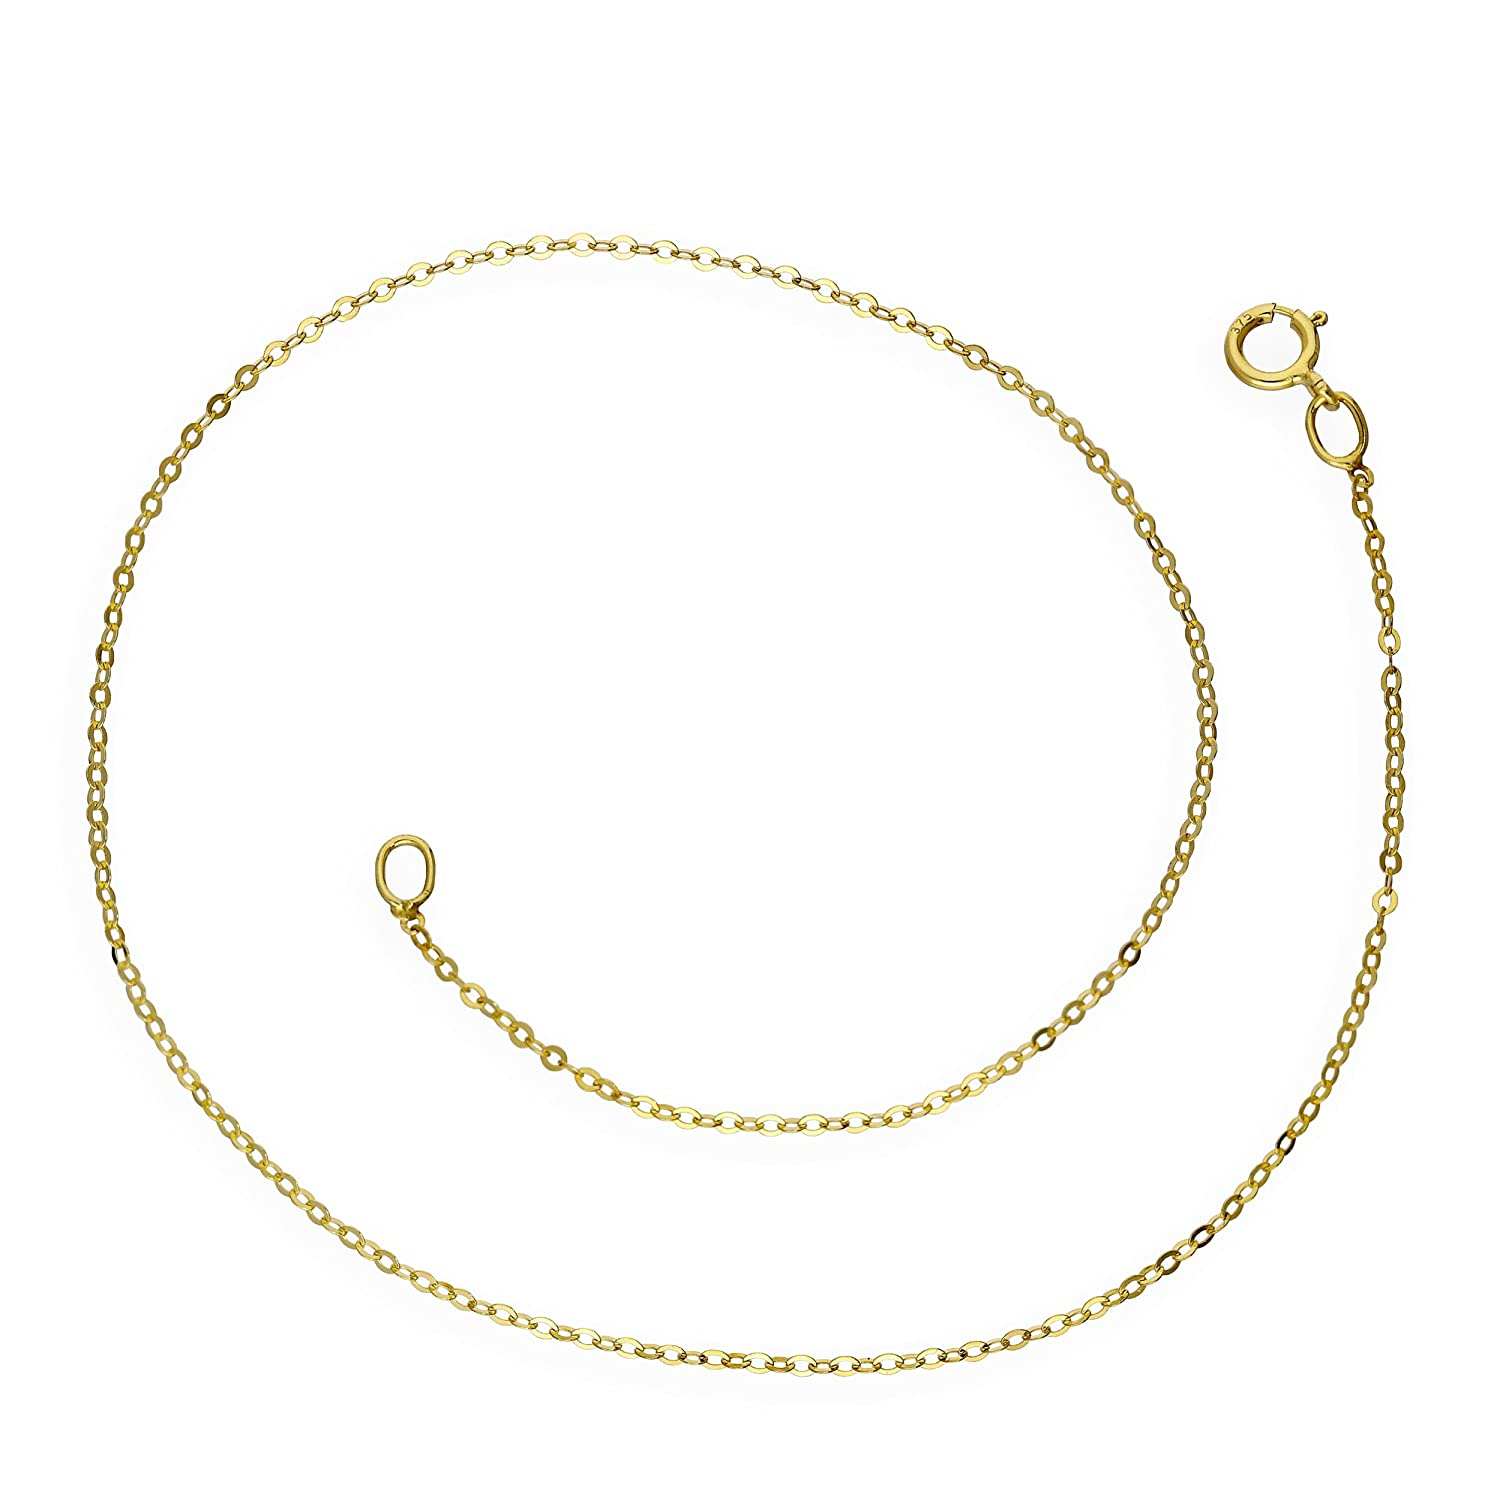 9ct Yellow Gold Hammered Trace Anklet 9.5 Inches jewellerybox MPL-001